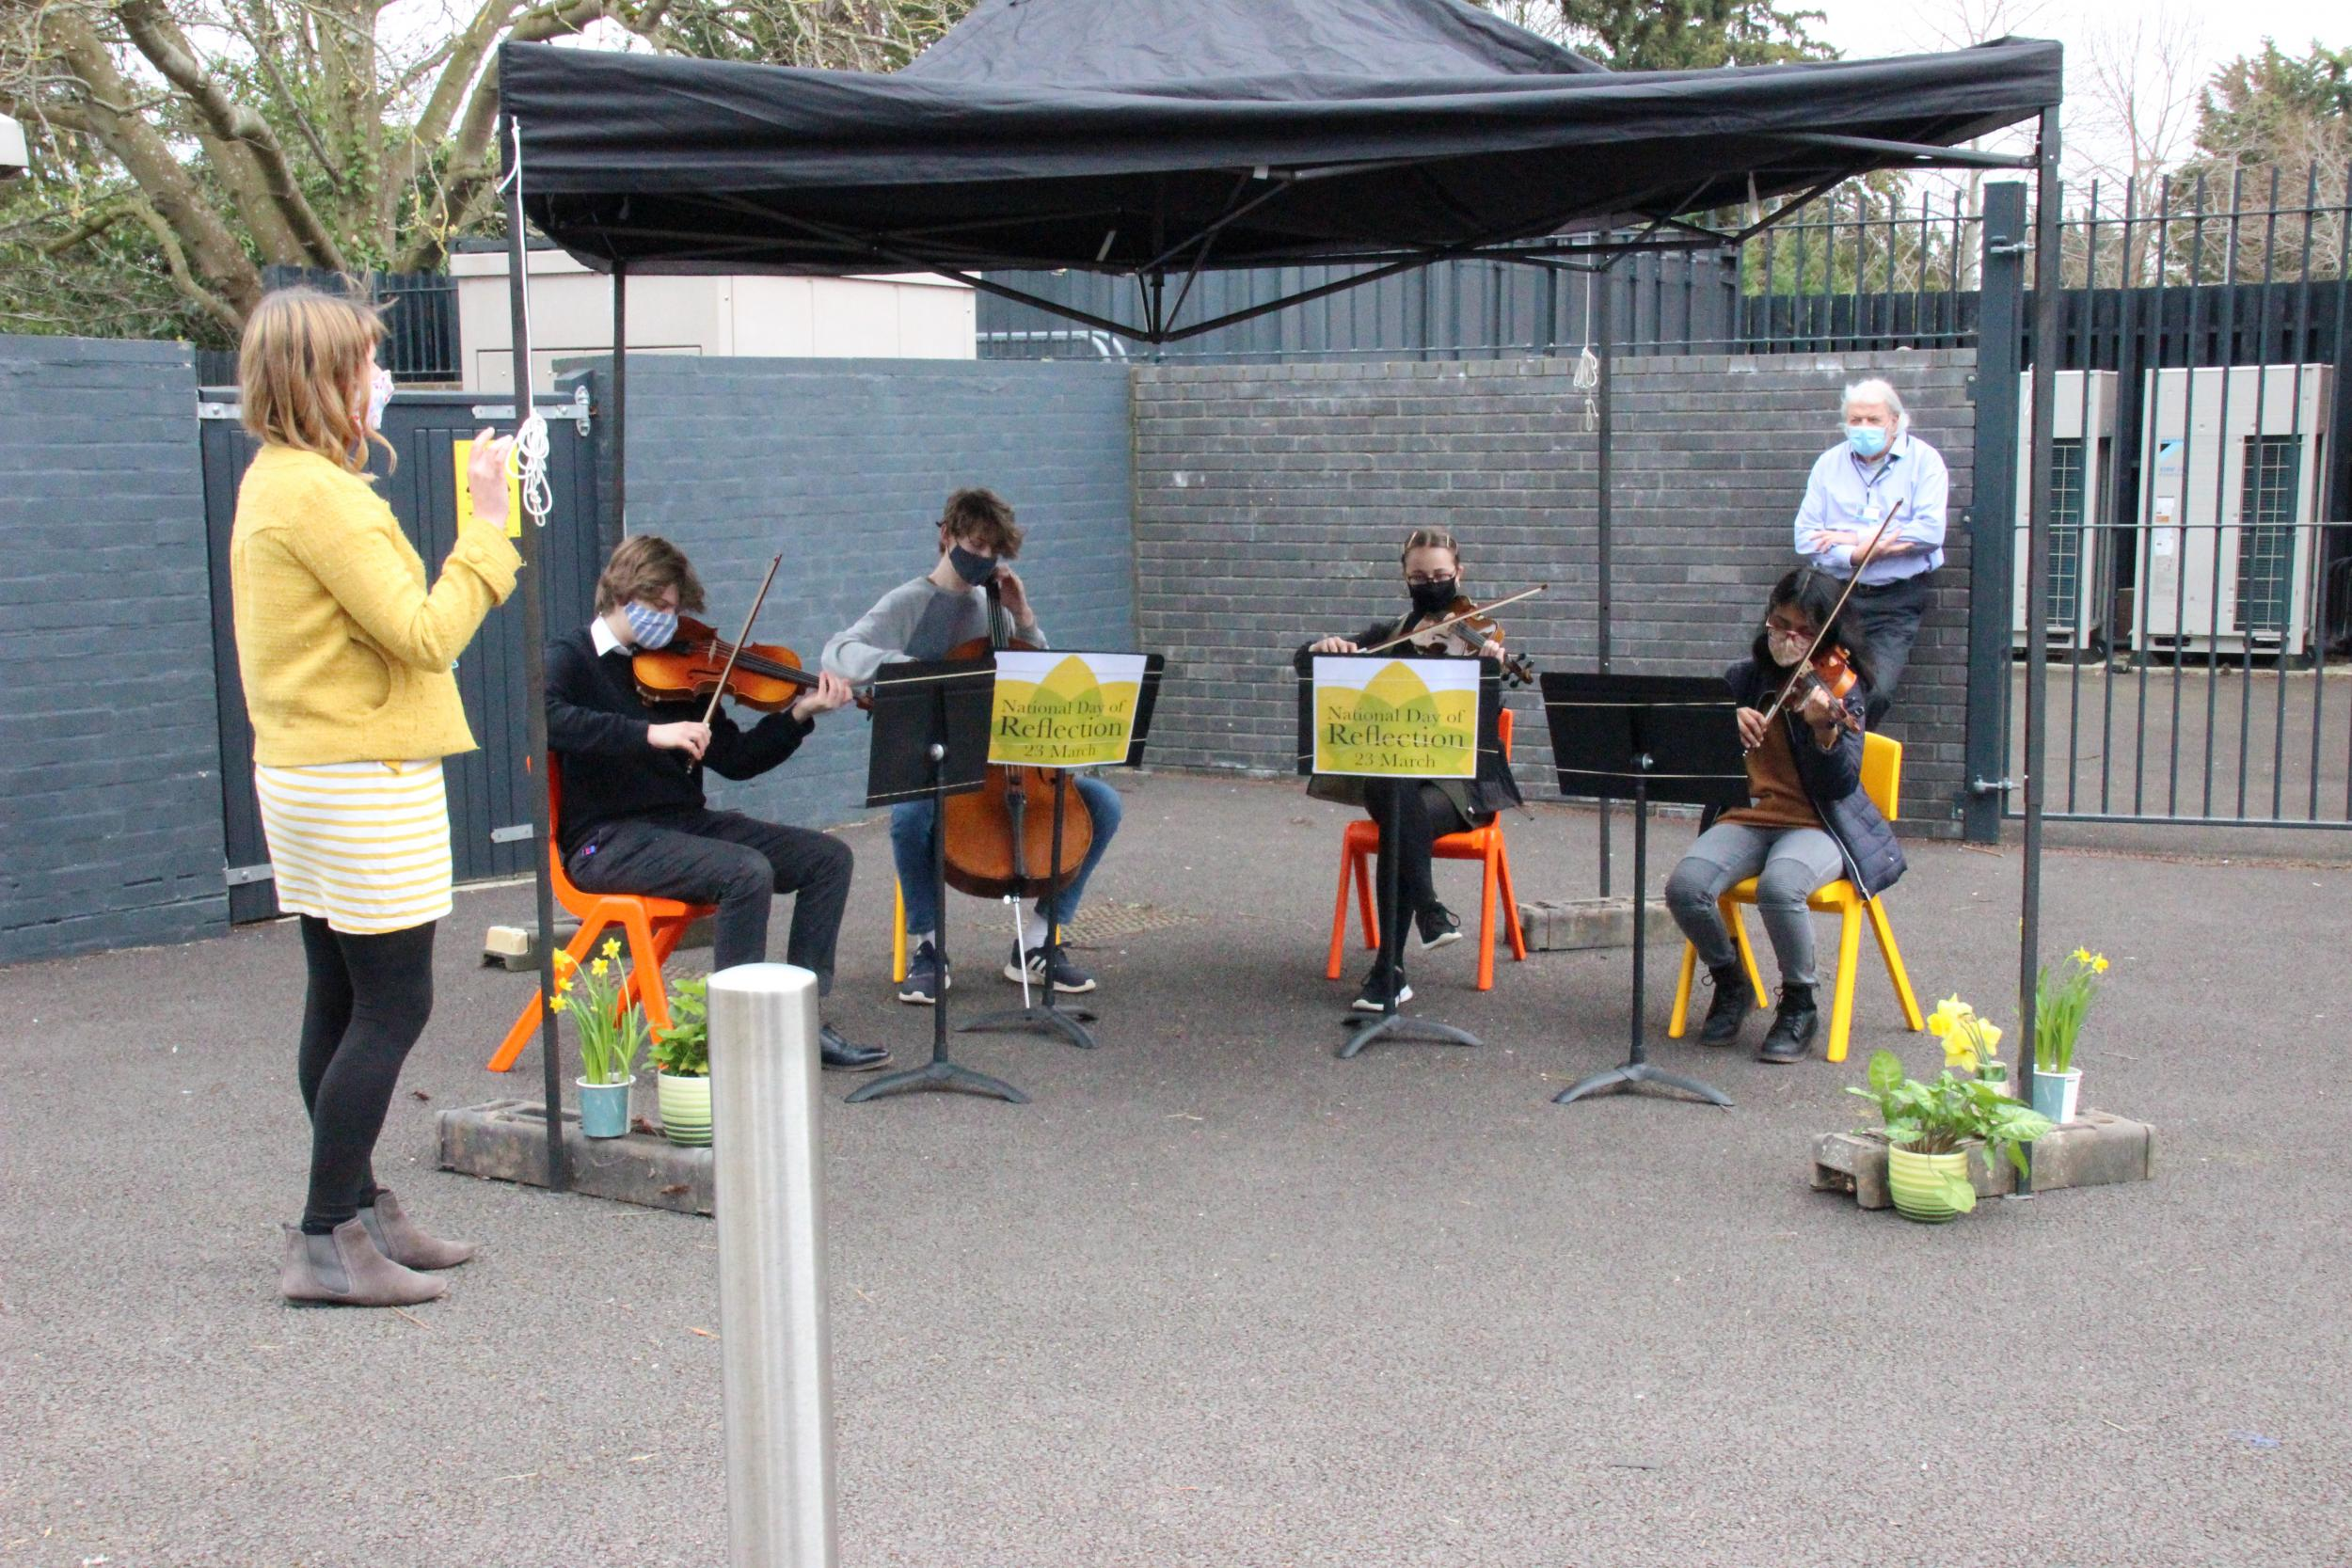 Course Manager Kathryn Foyle and student string quartet sat outside under canopy